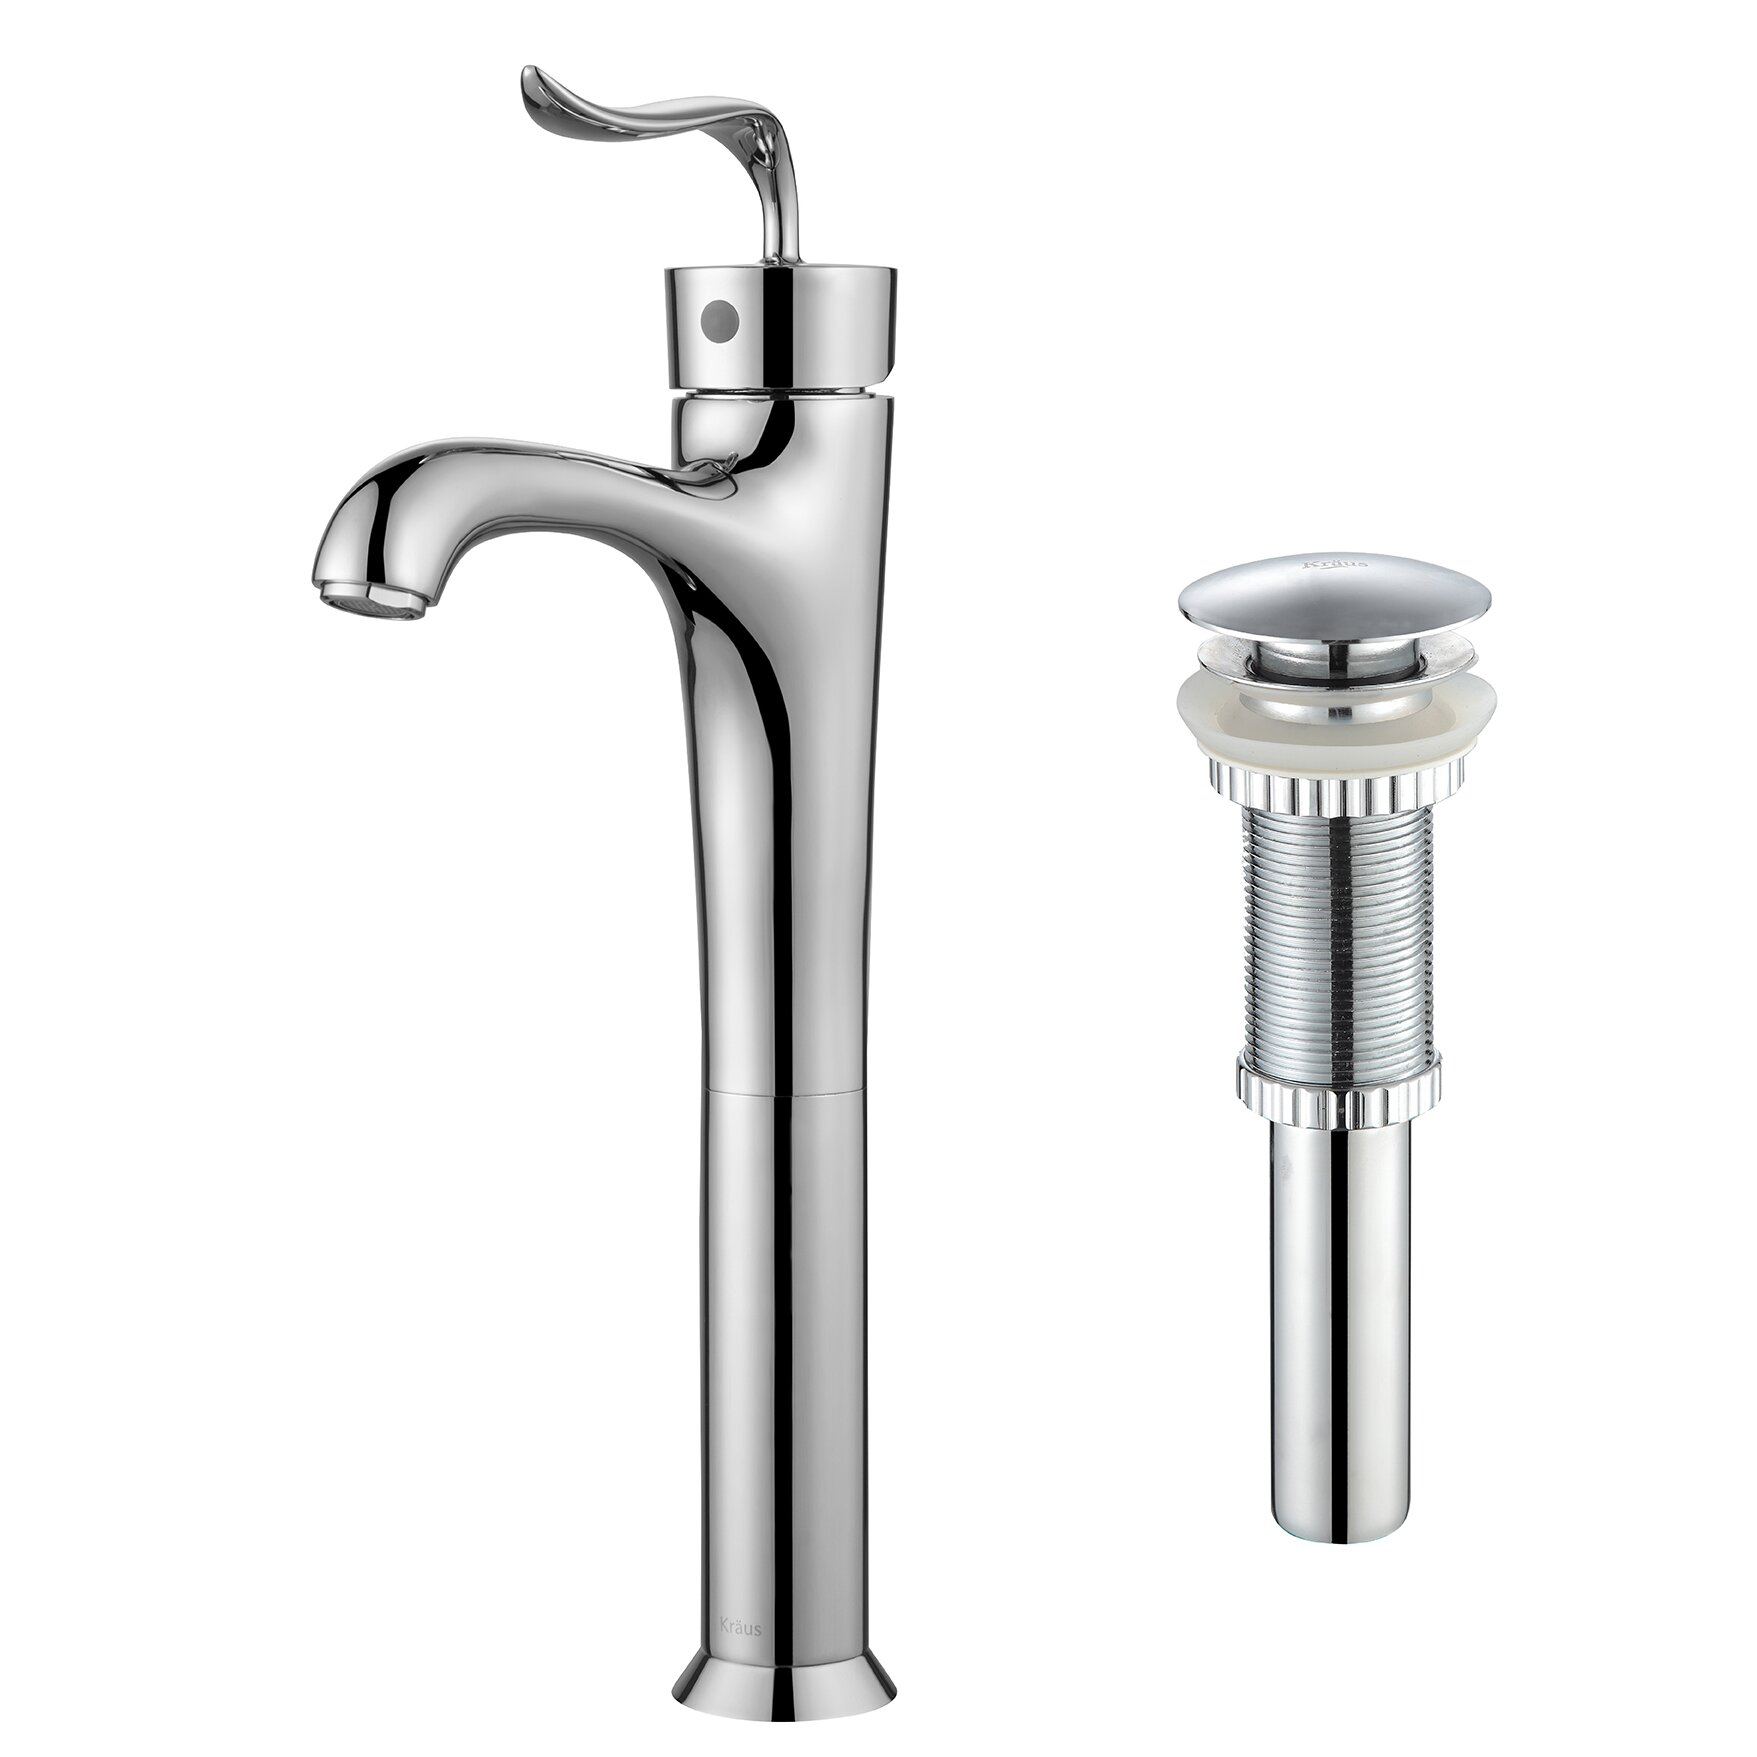 Kraus coda single lever vessel bathroom faucet with pop - Kraus shower faucets ...